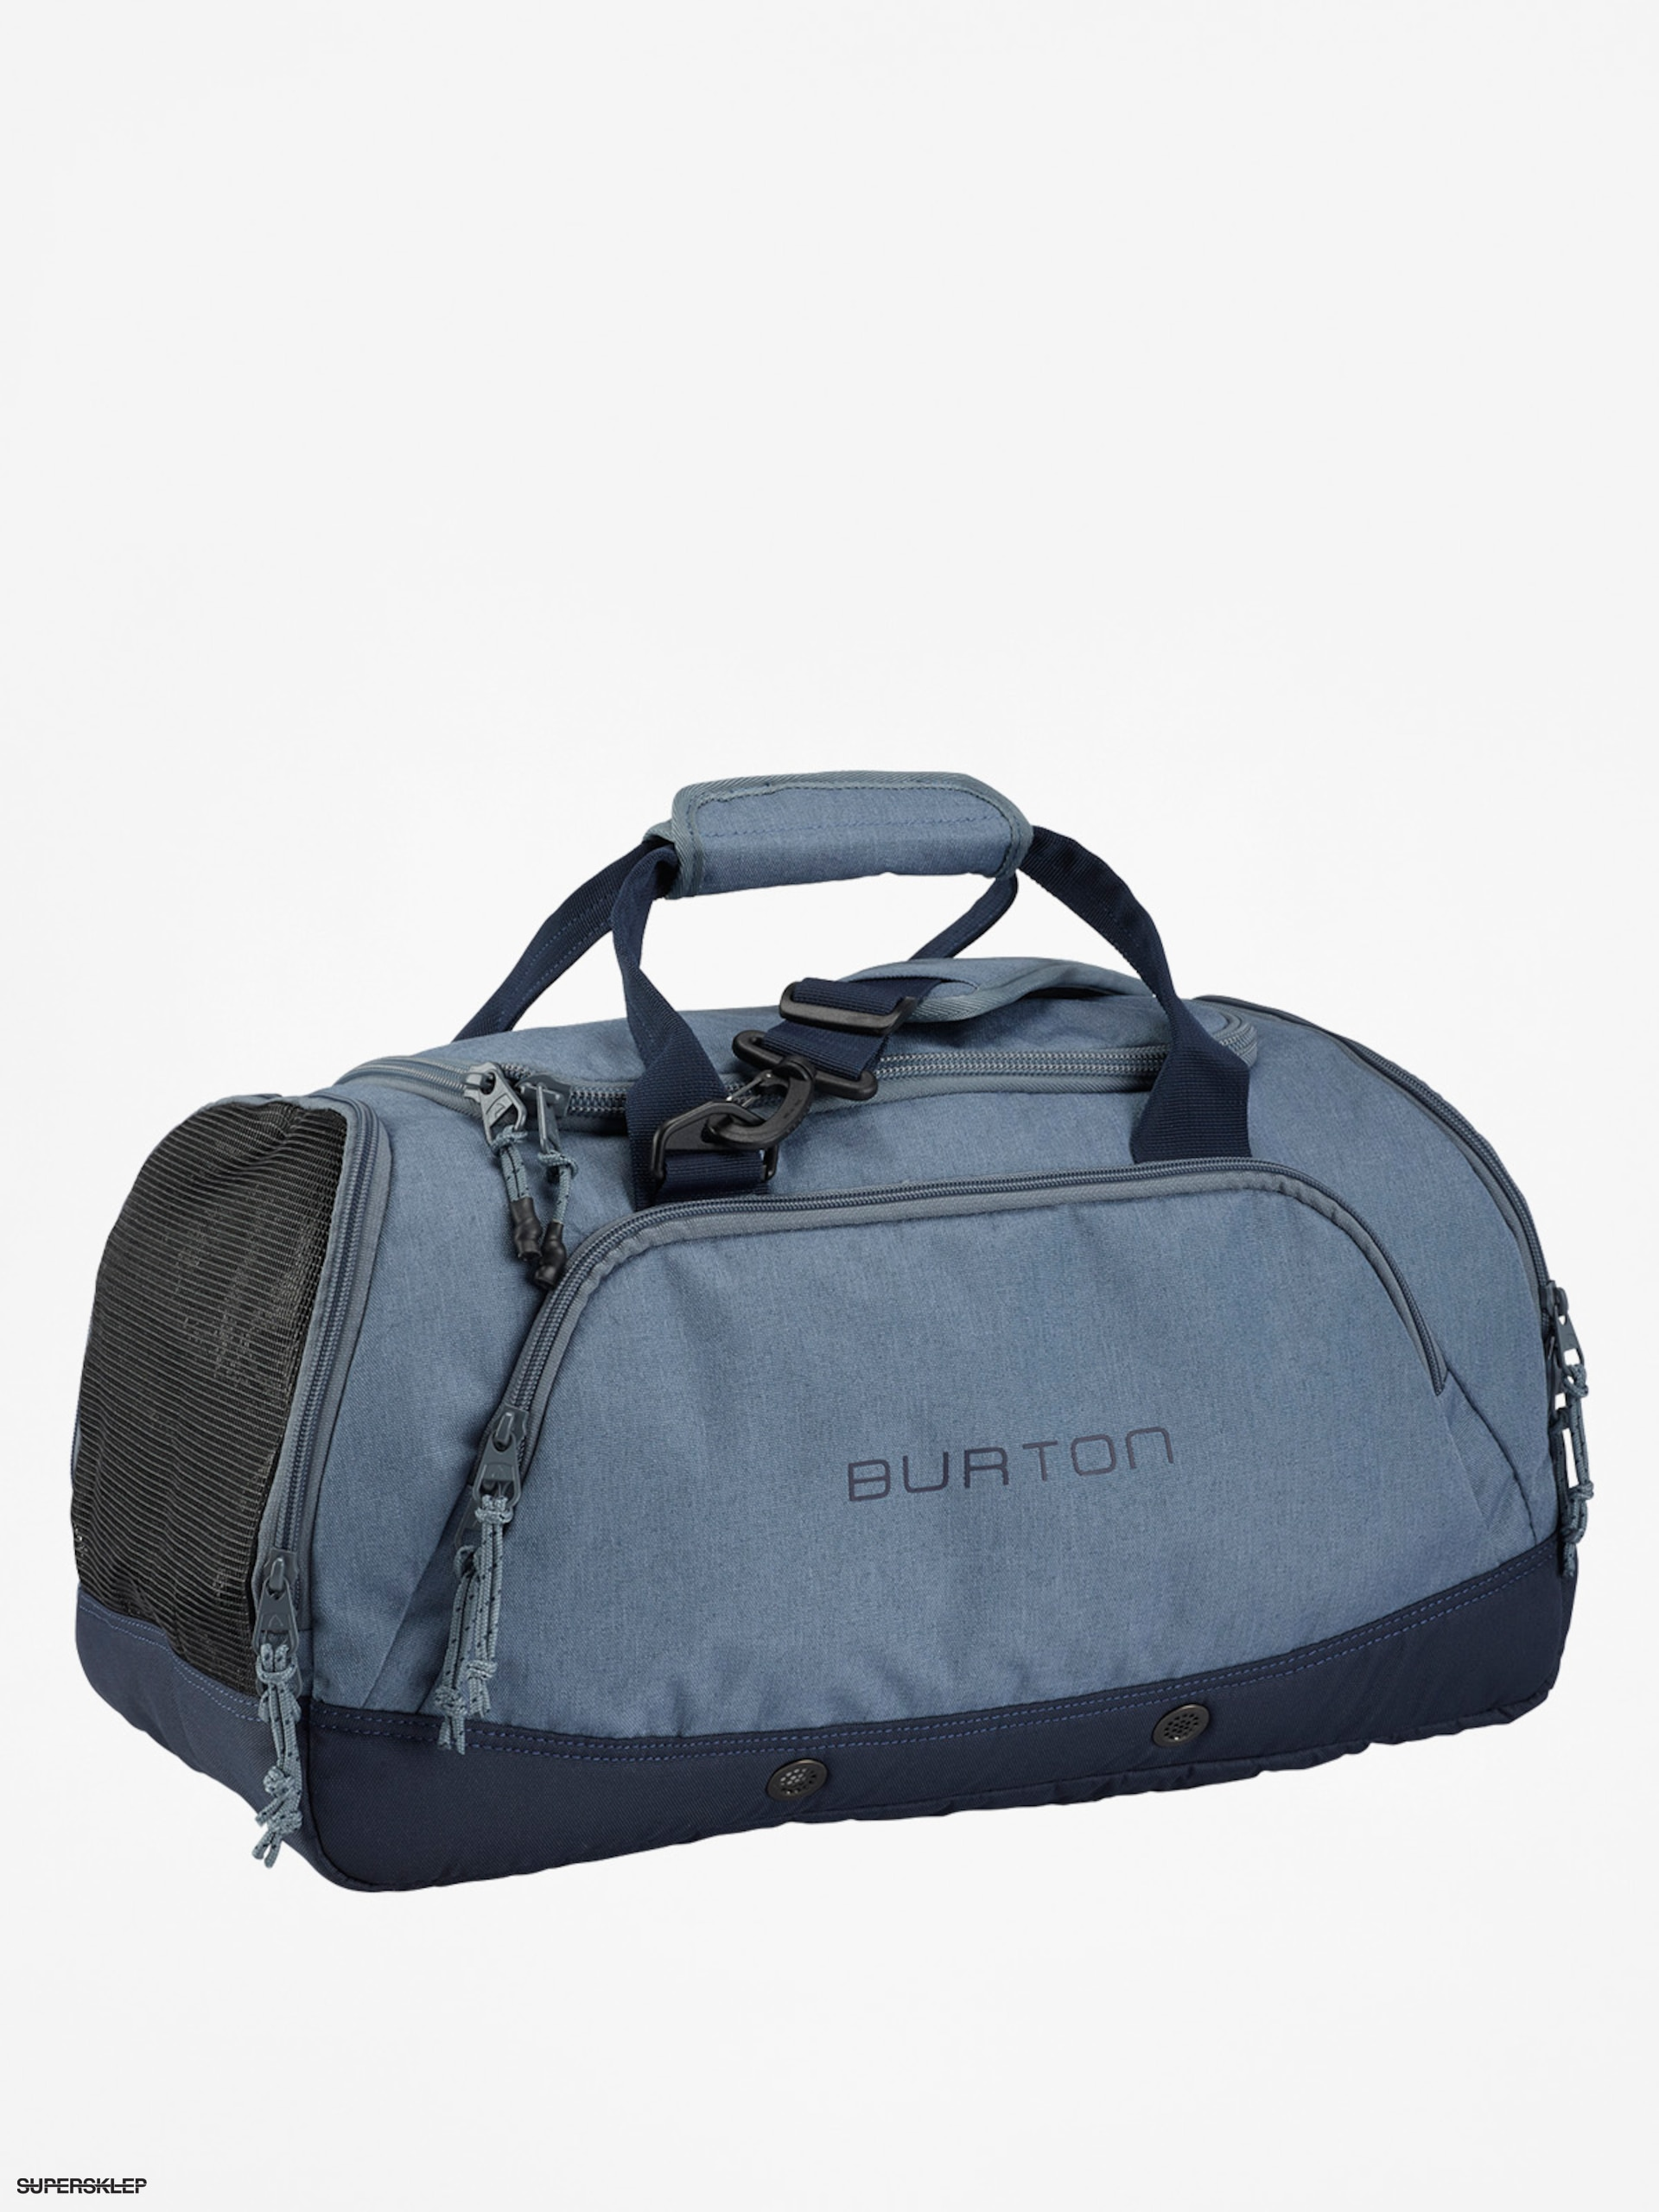 Taška Burton Boothaus Bag Md 2.0 (la sky heather)